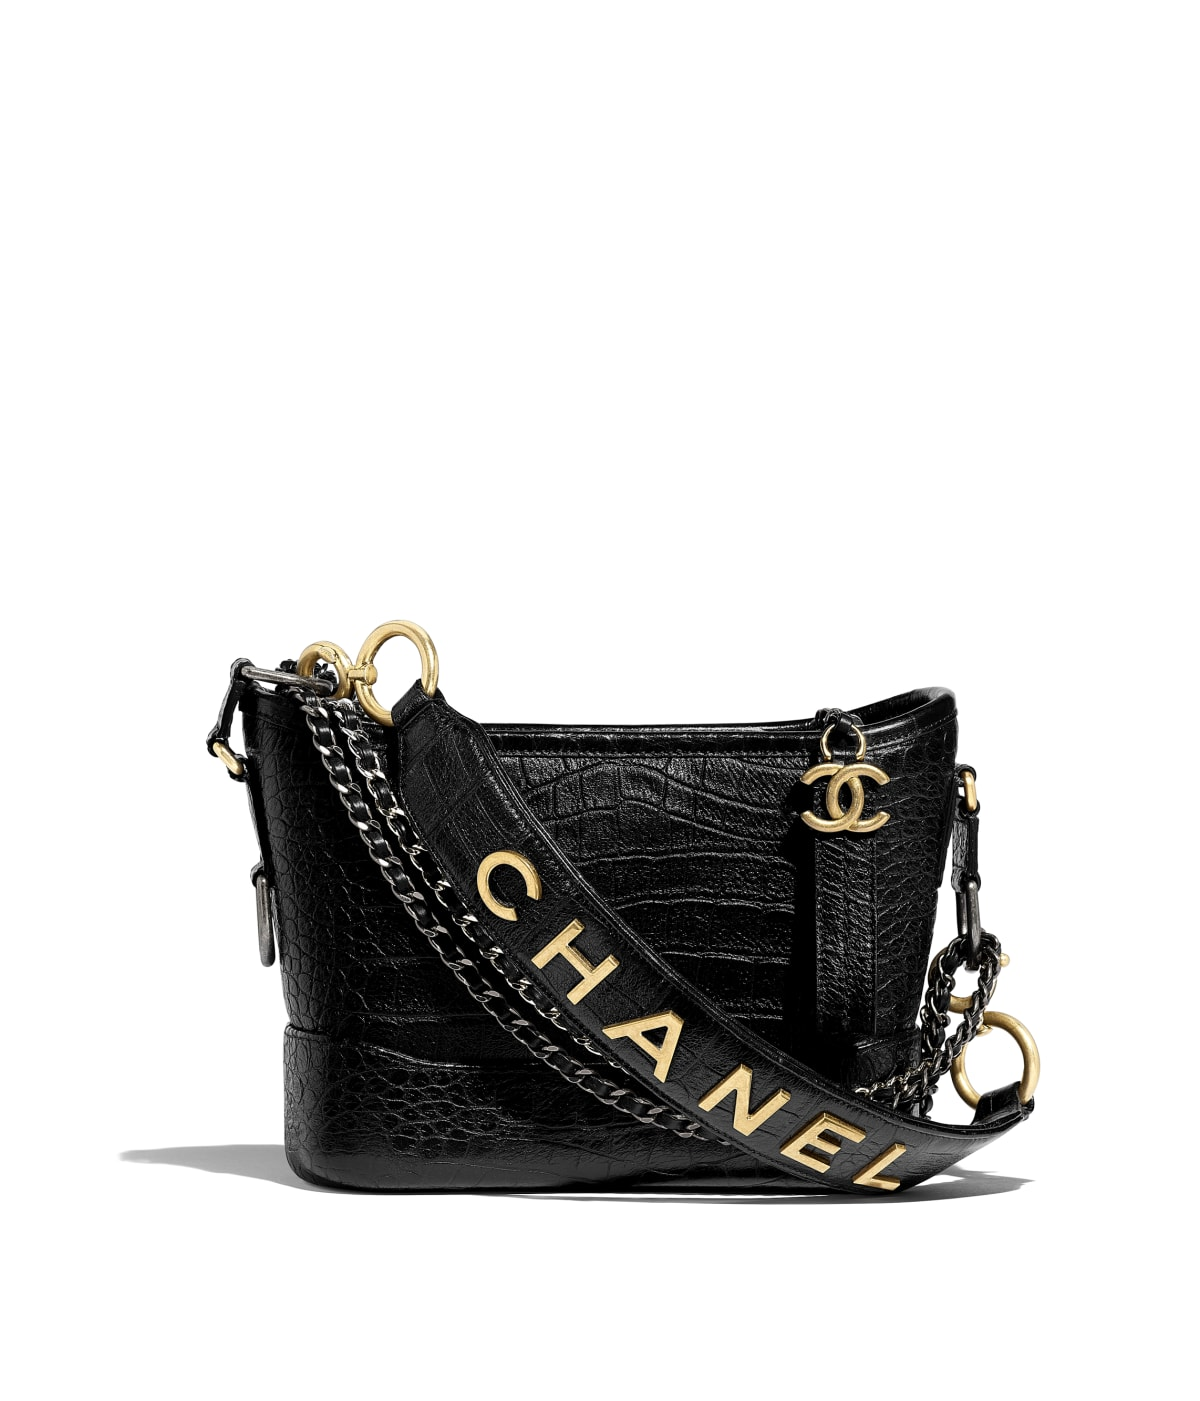 b162c533dc9f Hobo Bags - Handbags - CHANEL